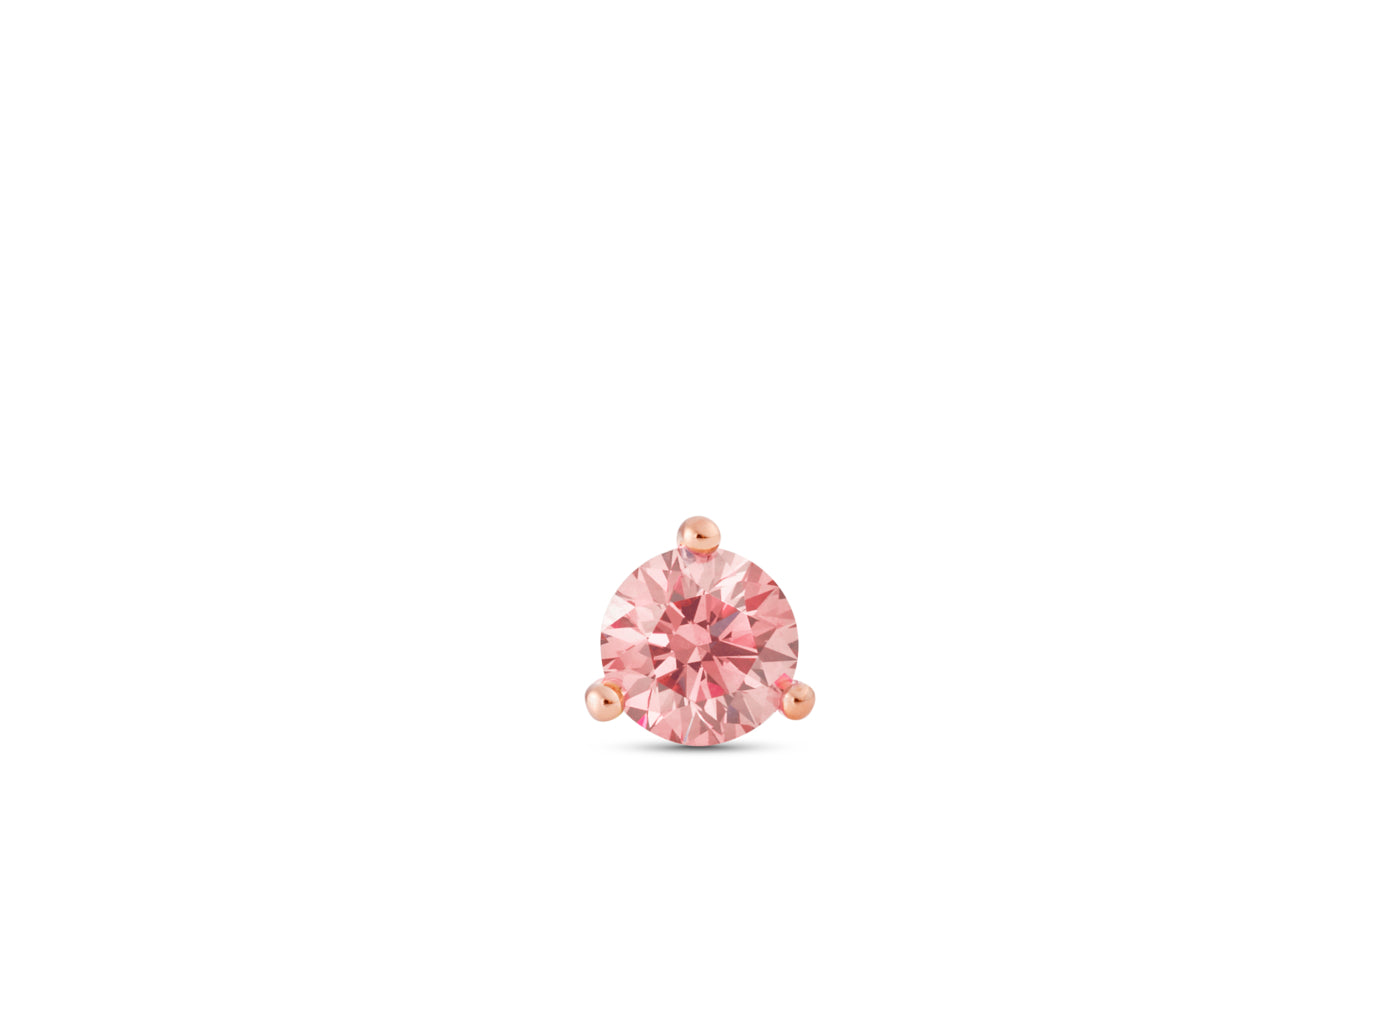 Front view of Solitaire 3/4 carat stud with pink diamond